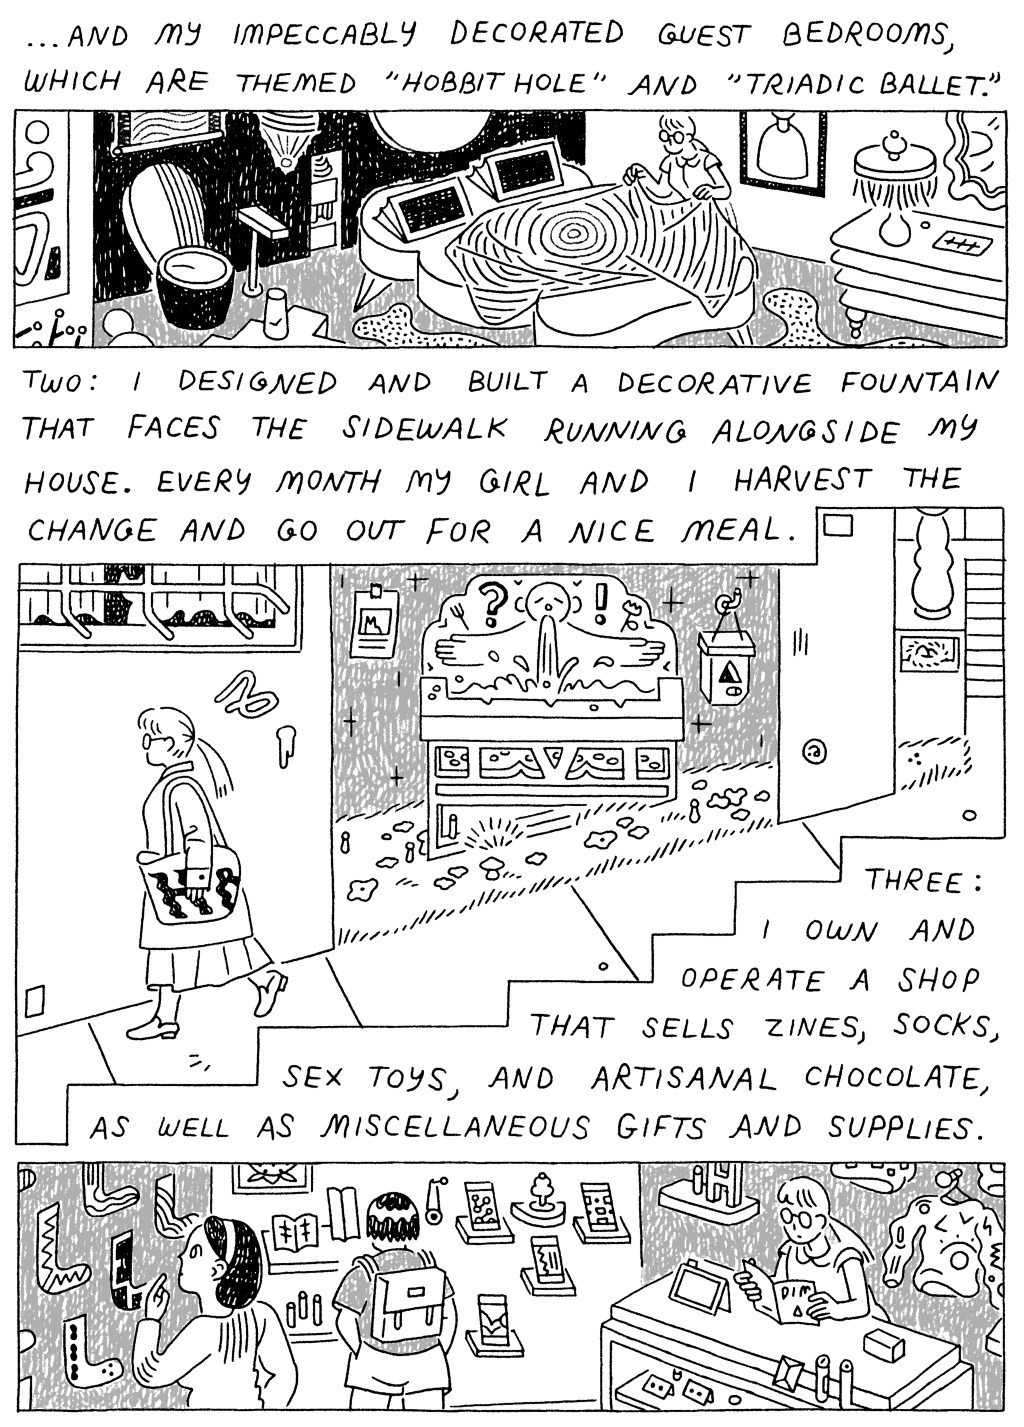 "Panel 1: (Woman, making bed in eccentrically decorated room.) ...And my impeccably decorated guest bedrooms, which are themed ""Hobbit Hole"" and ""Triadic Ballet."" Panel 2: (Woman, walking by fountain.) Two: I designed and built a decorative fountain that faces the sidewalk running alongside my house. Every month, my girl and I harvest the change and go out for a nice meal. Panel 3: (Woman, at the cashier's desk of a gift shop.) Three: I own and operate a shop that sells zines, socks, sex toys, and artisanal chocolates, as well as miscellaneous gifts and supplies."